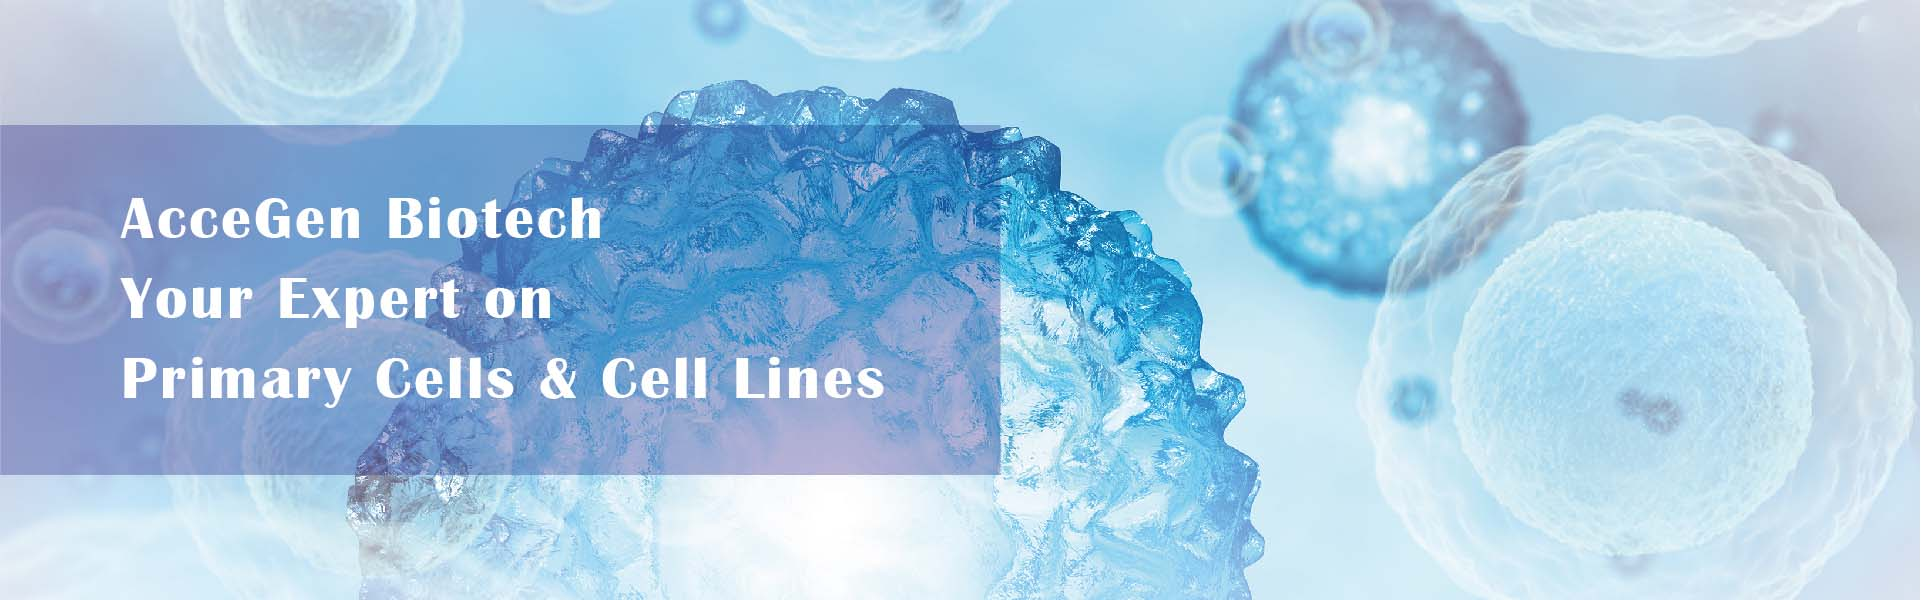 AcceGen Biotech, your expert on primary cells & cell lines, potent and pure human & animal primary cell product list.